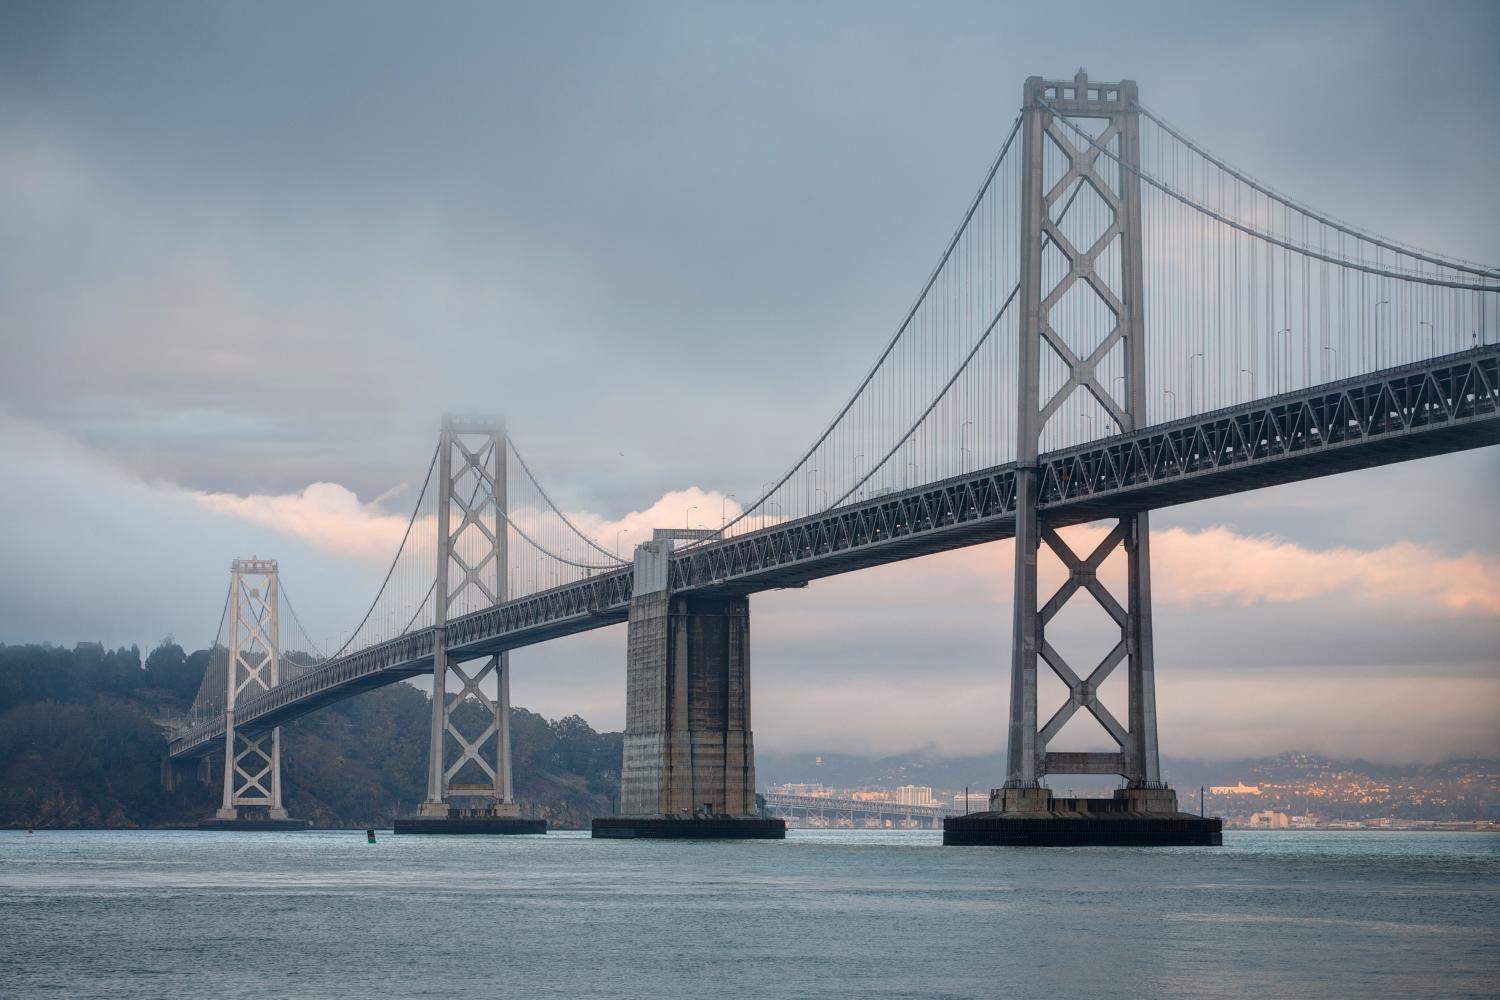 The Bay Bridge stands with the uncertainty of increased tolls that frustrate some and appeal to others.